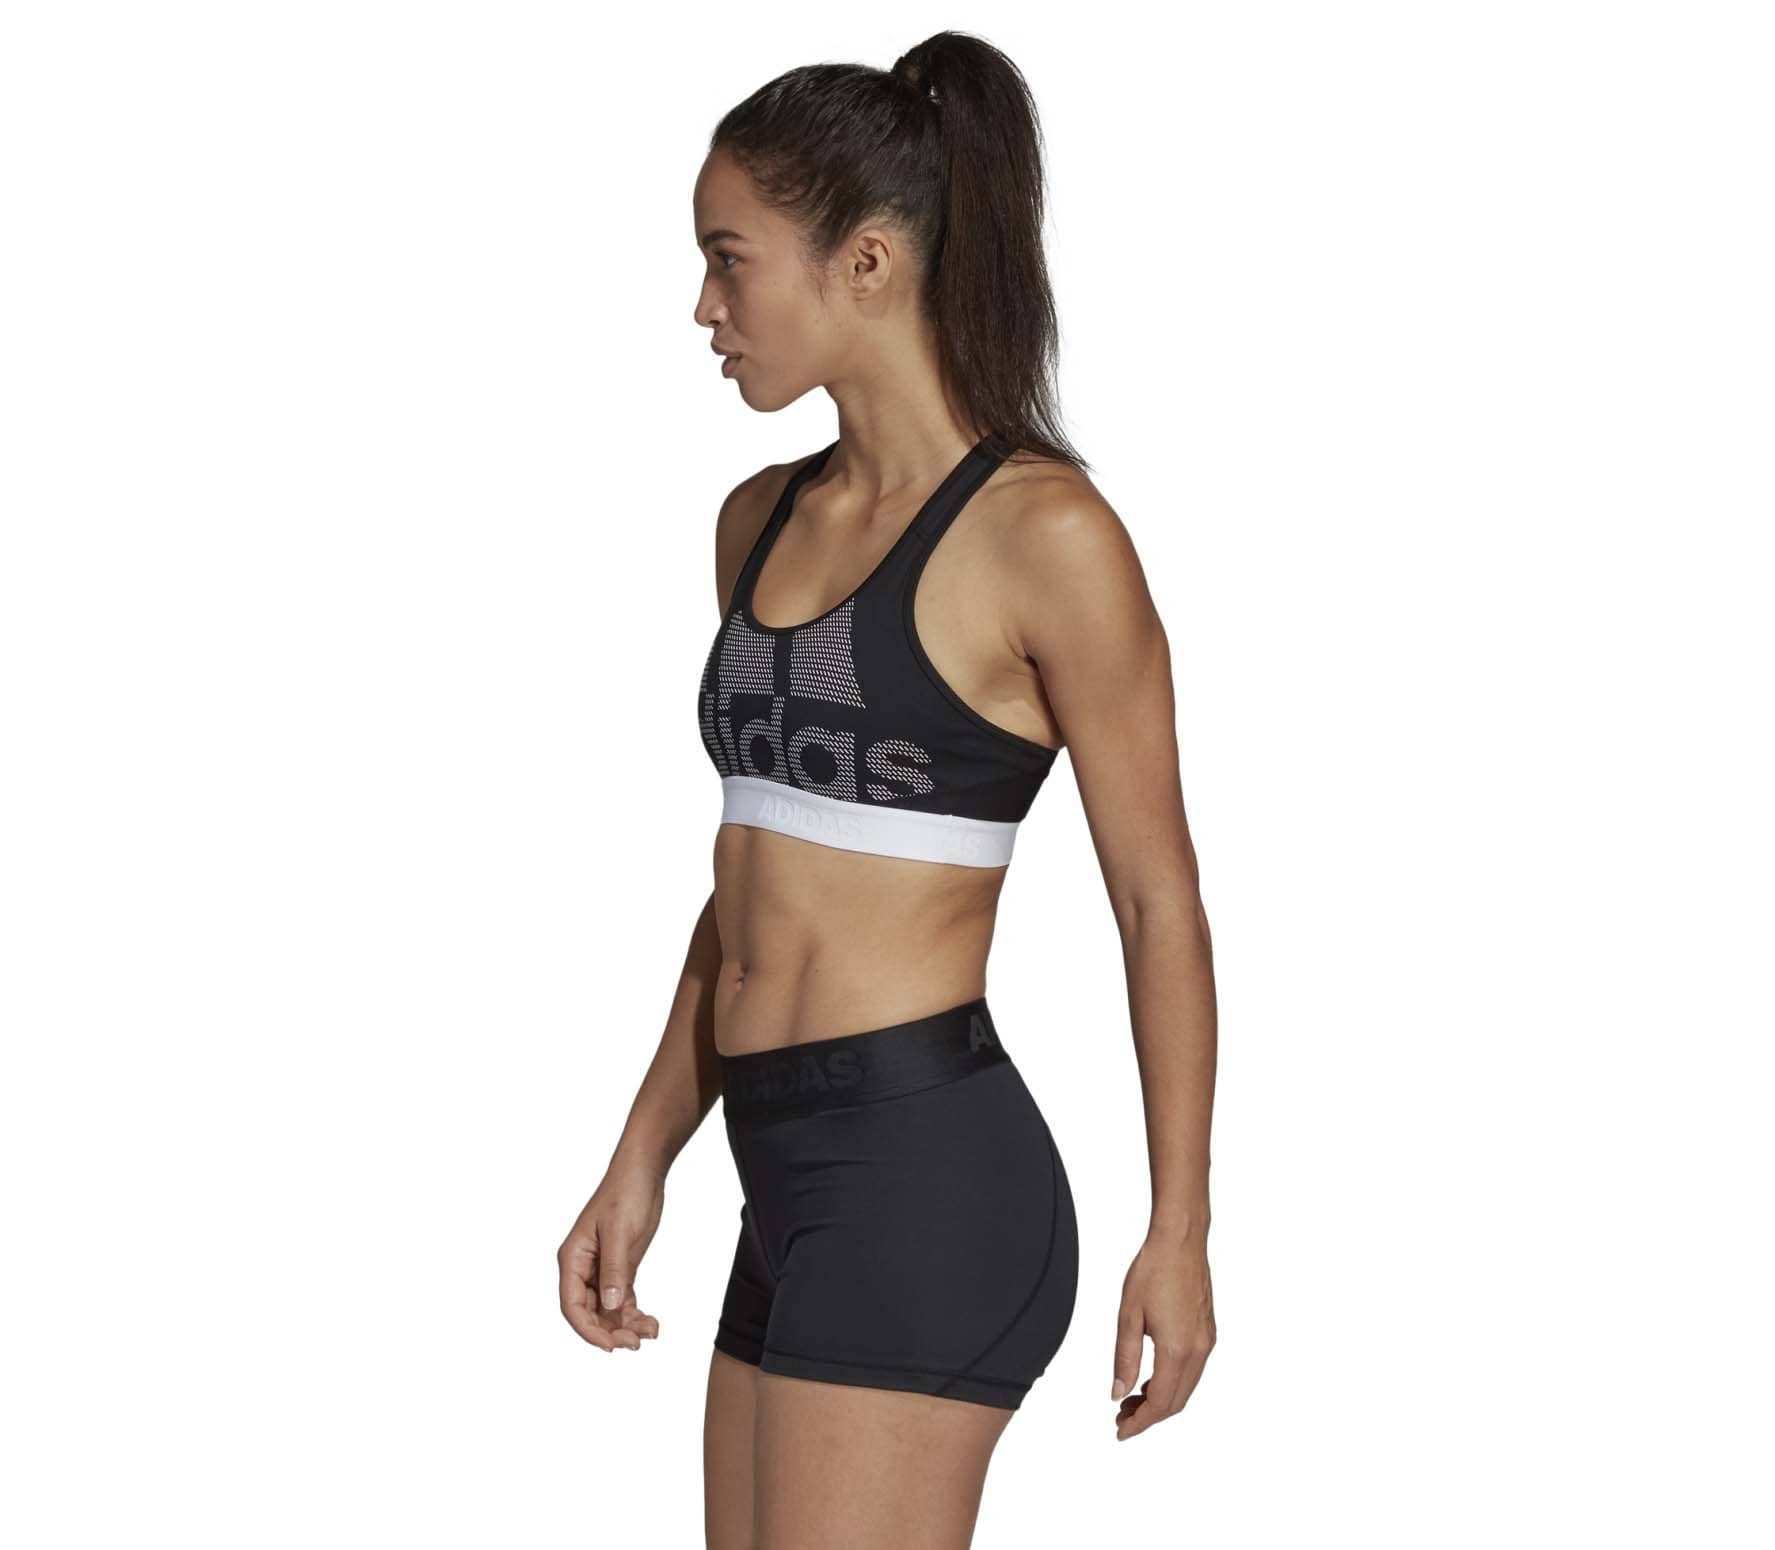 adidas Performance - Don t Rest Alphaskin Sport Damen Trainingsbra (schwarz  weiß) b40d728543d